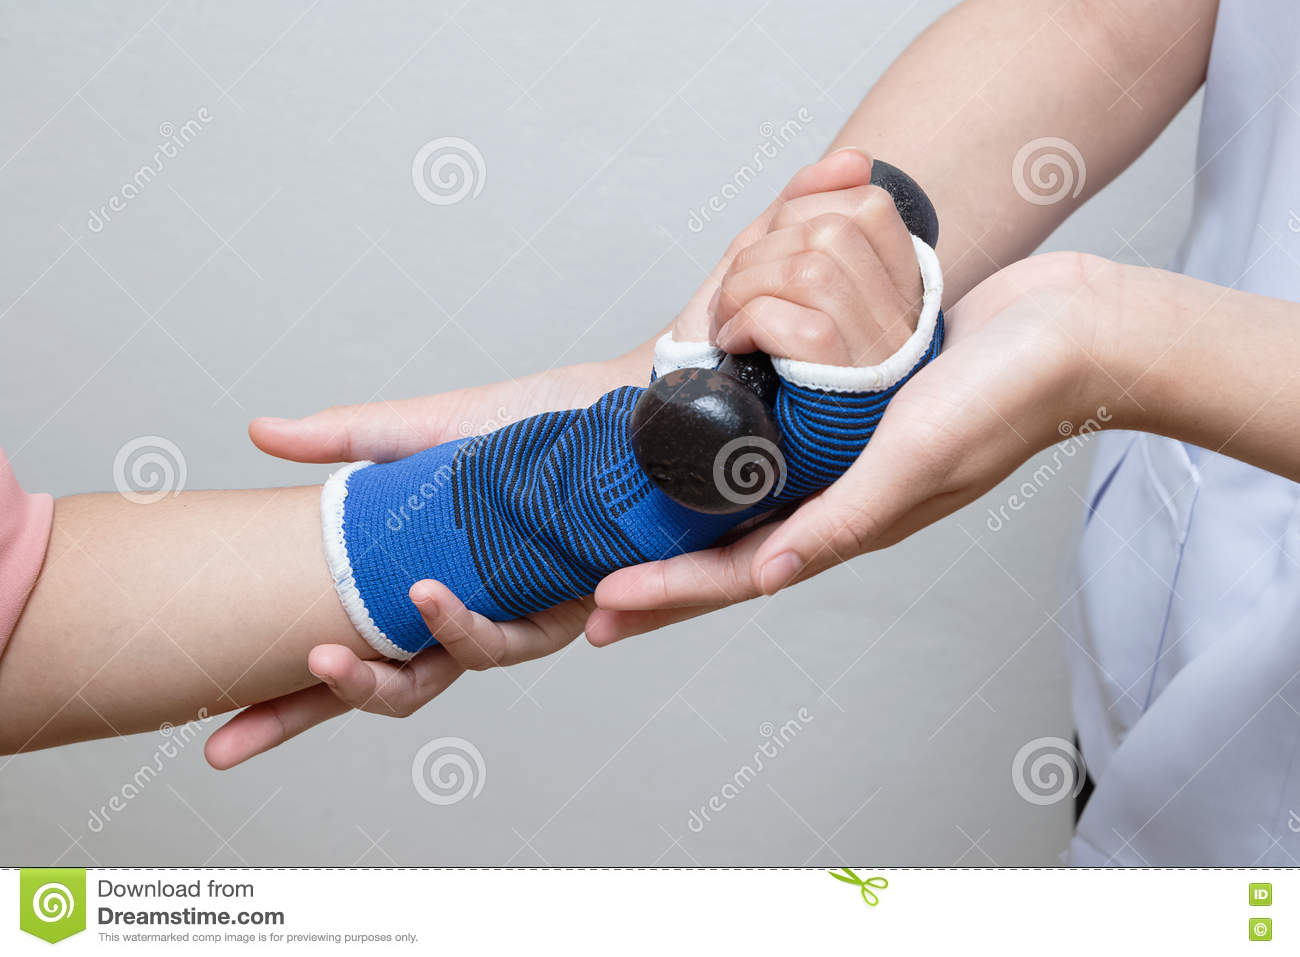 Physical therapist assisting patient woman in lifting dumbbells